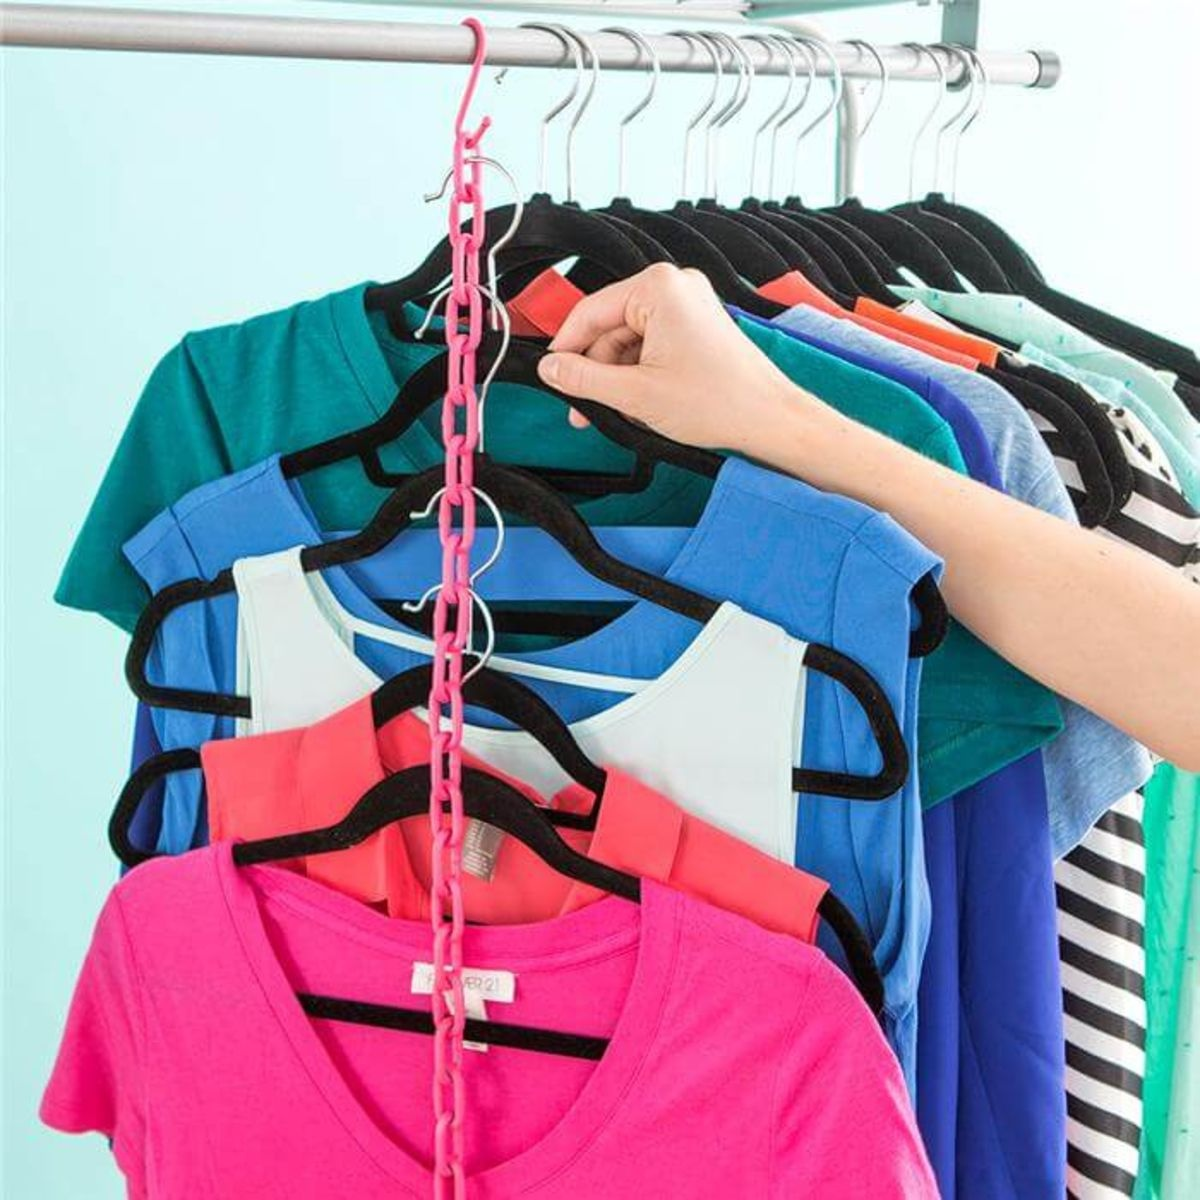 Use Chains and S-Hooks 10 Beautiful DIY Closet Organizers